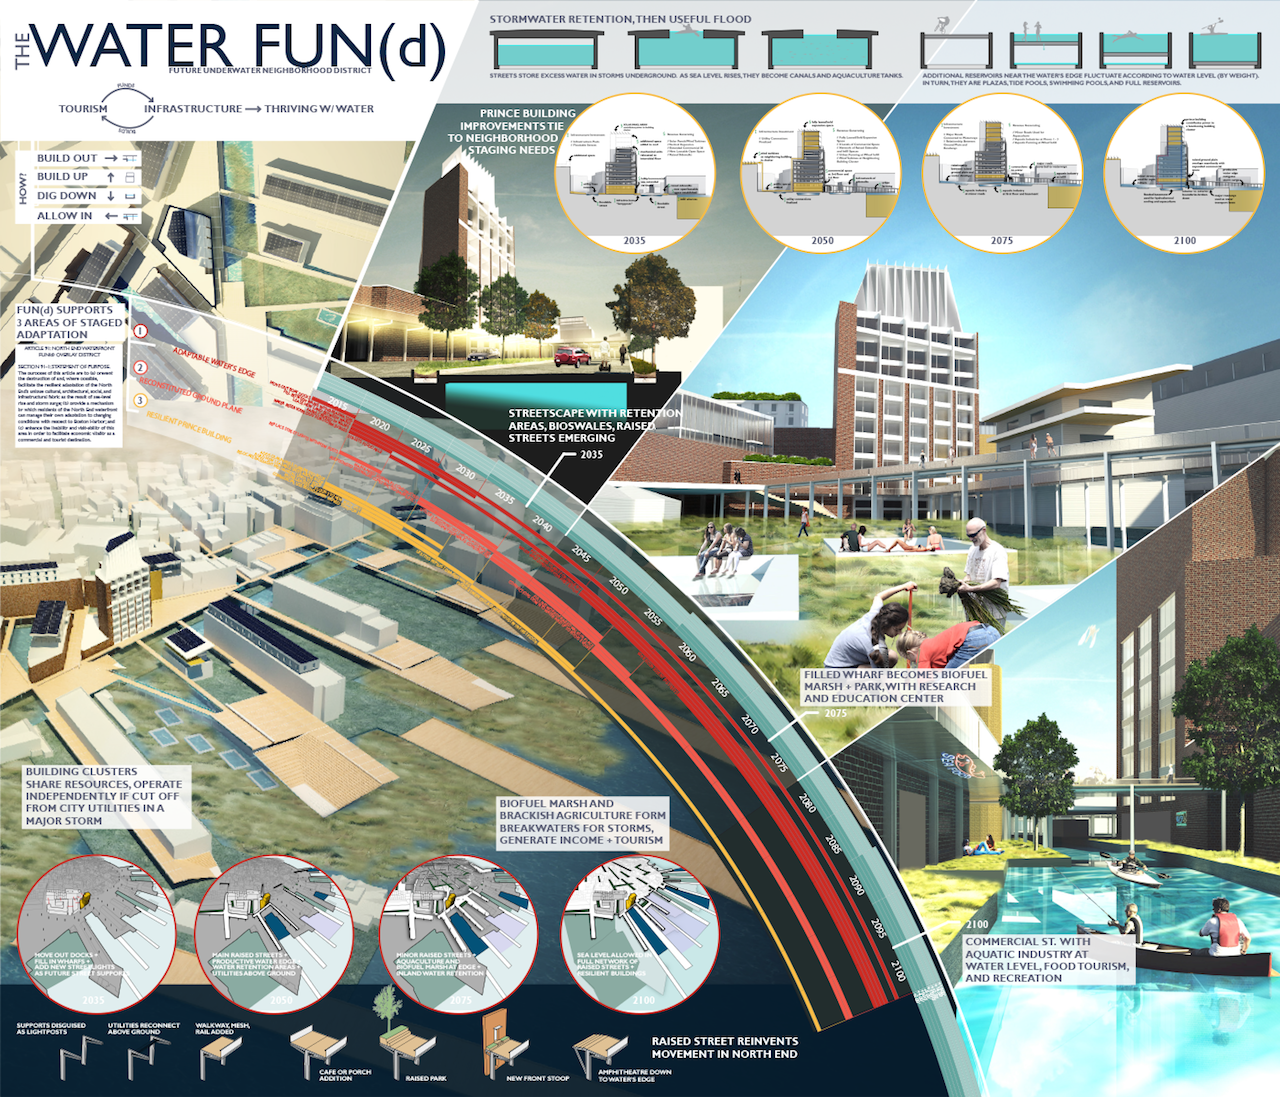 """""""Water FUN(d)"""" led by ARC/Architectural Resources Cambridge – Dubbed the Future Underwater Neighborhood district, or FUN(d), this proposal establishes a goal of creating a new urban area that skillfully interacts with an influx of water on an on-going basis. The team suggests that this plan could be accomplished, at least in part, by drawing on revenue from Boston's tourism economy."""